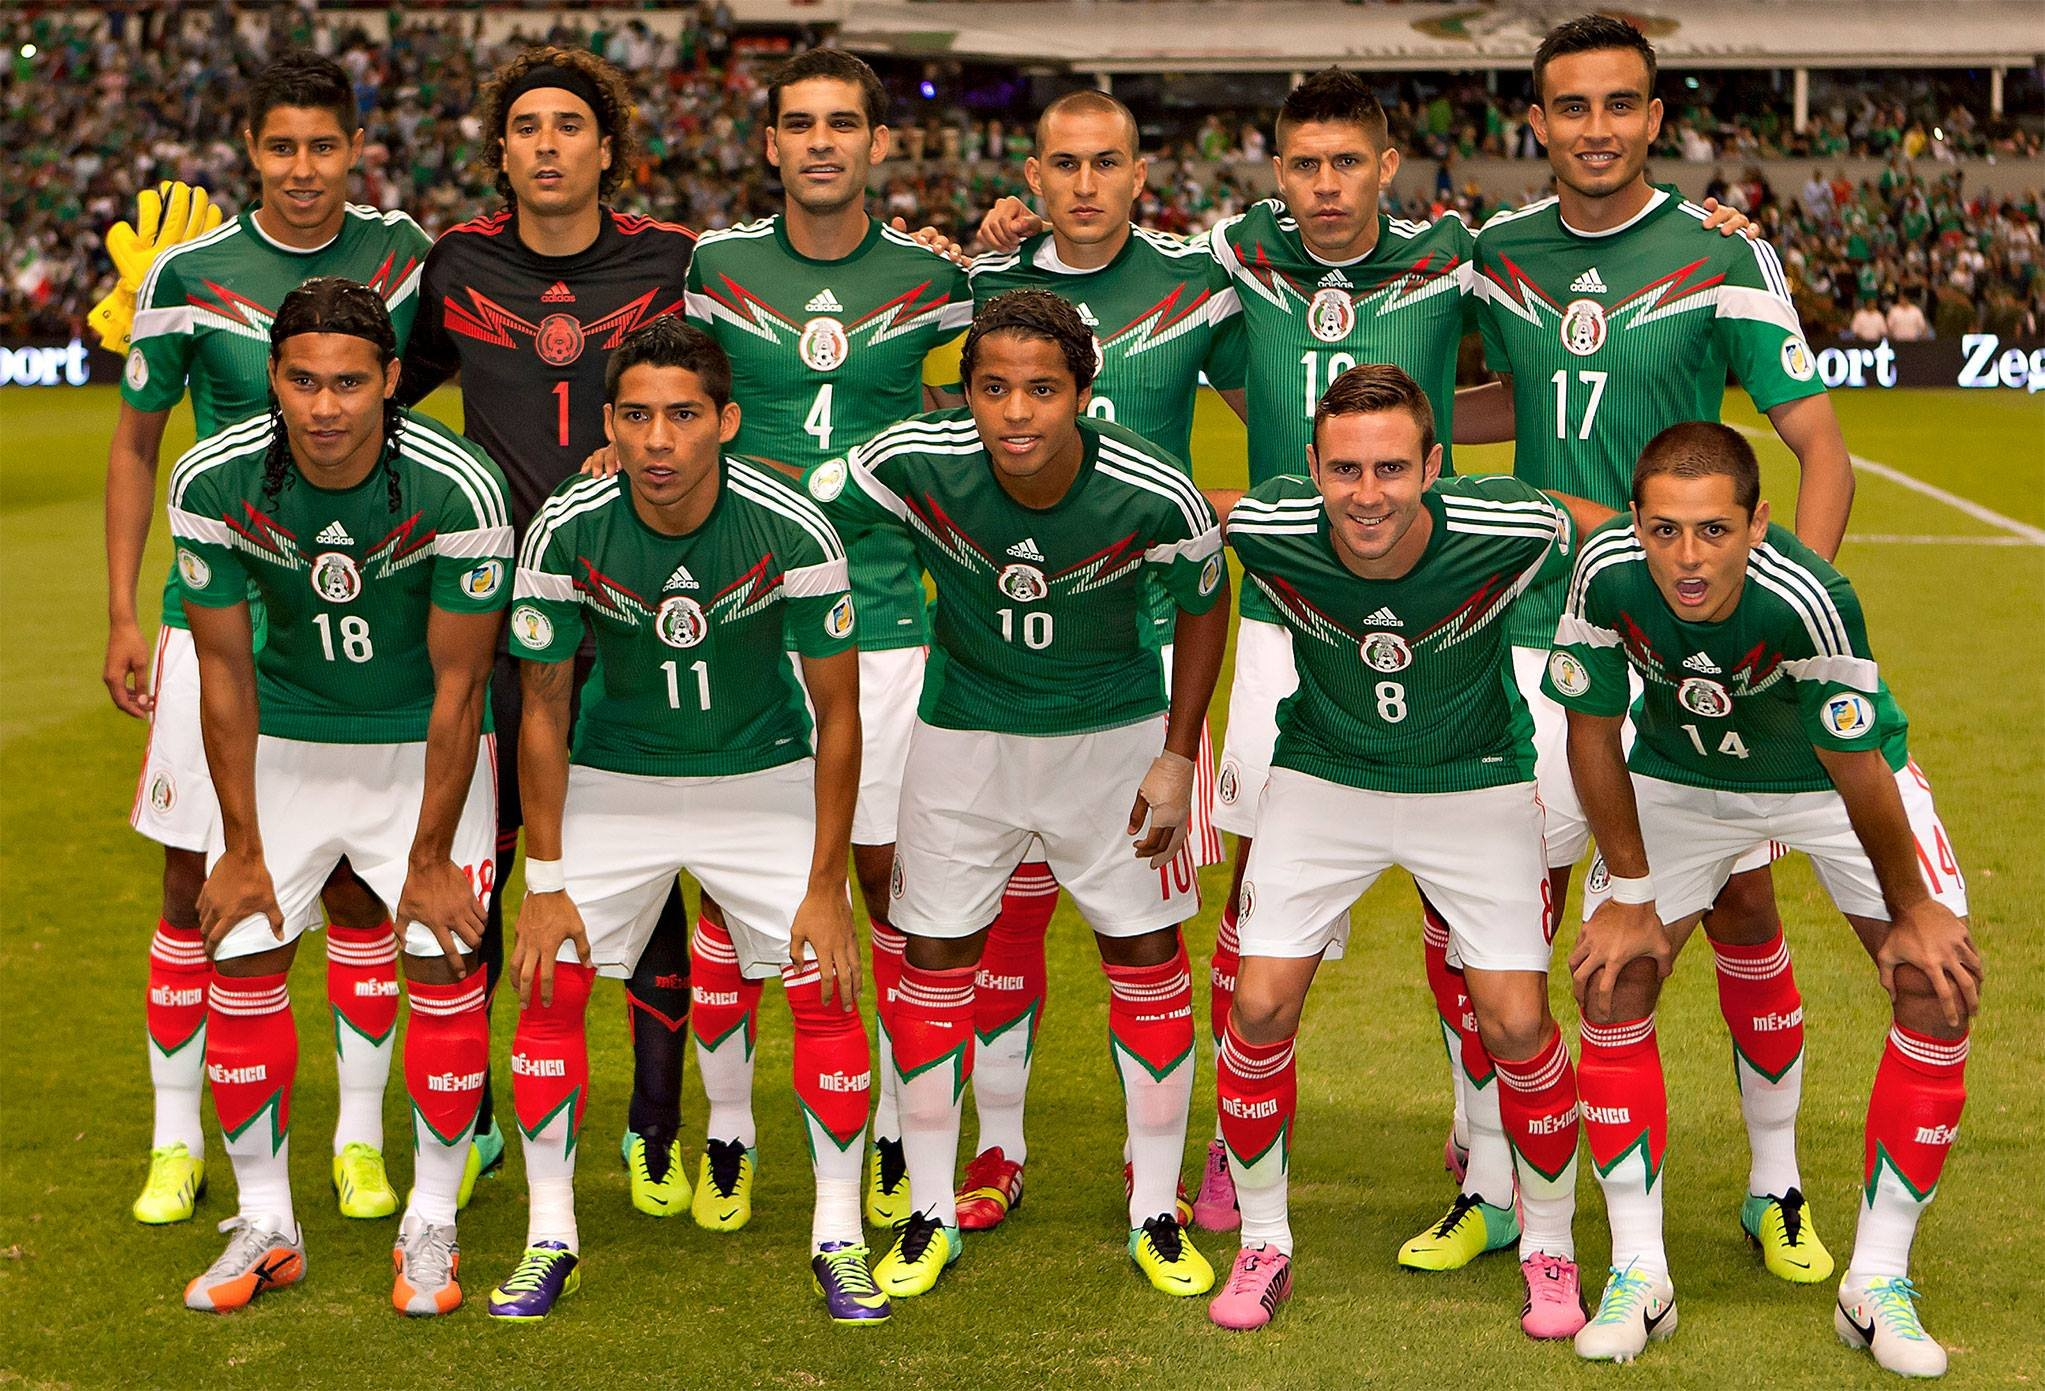 690eb608141f0 Seleccion mexico futbol wallpaper